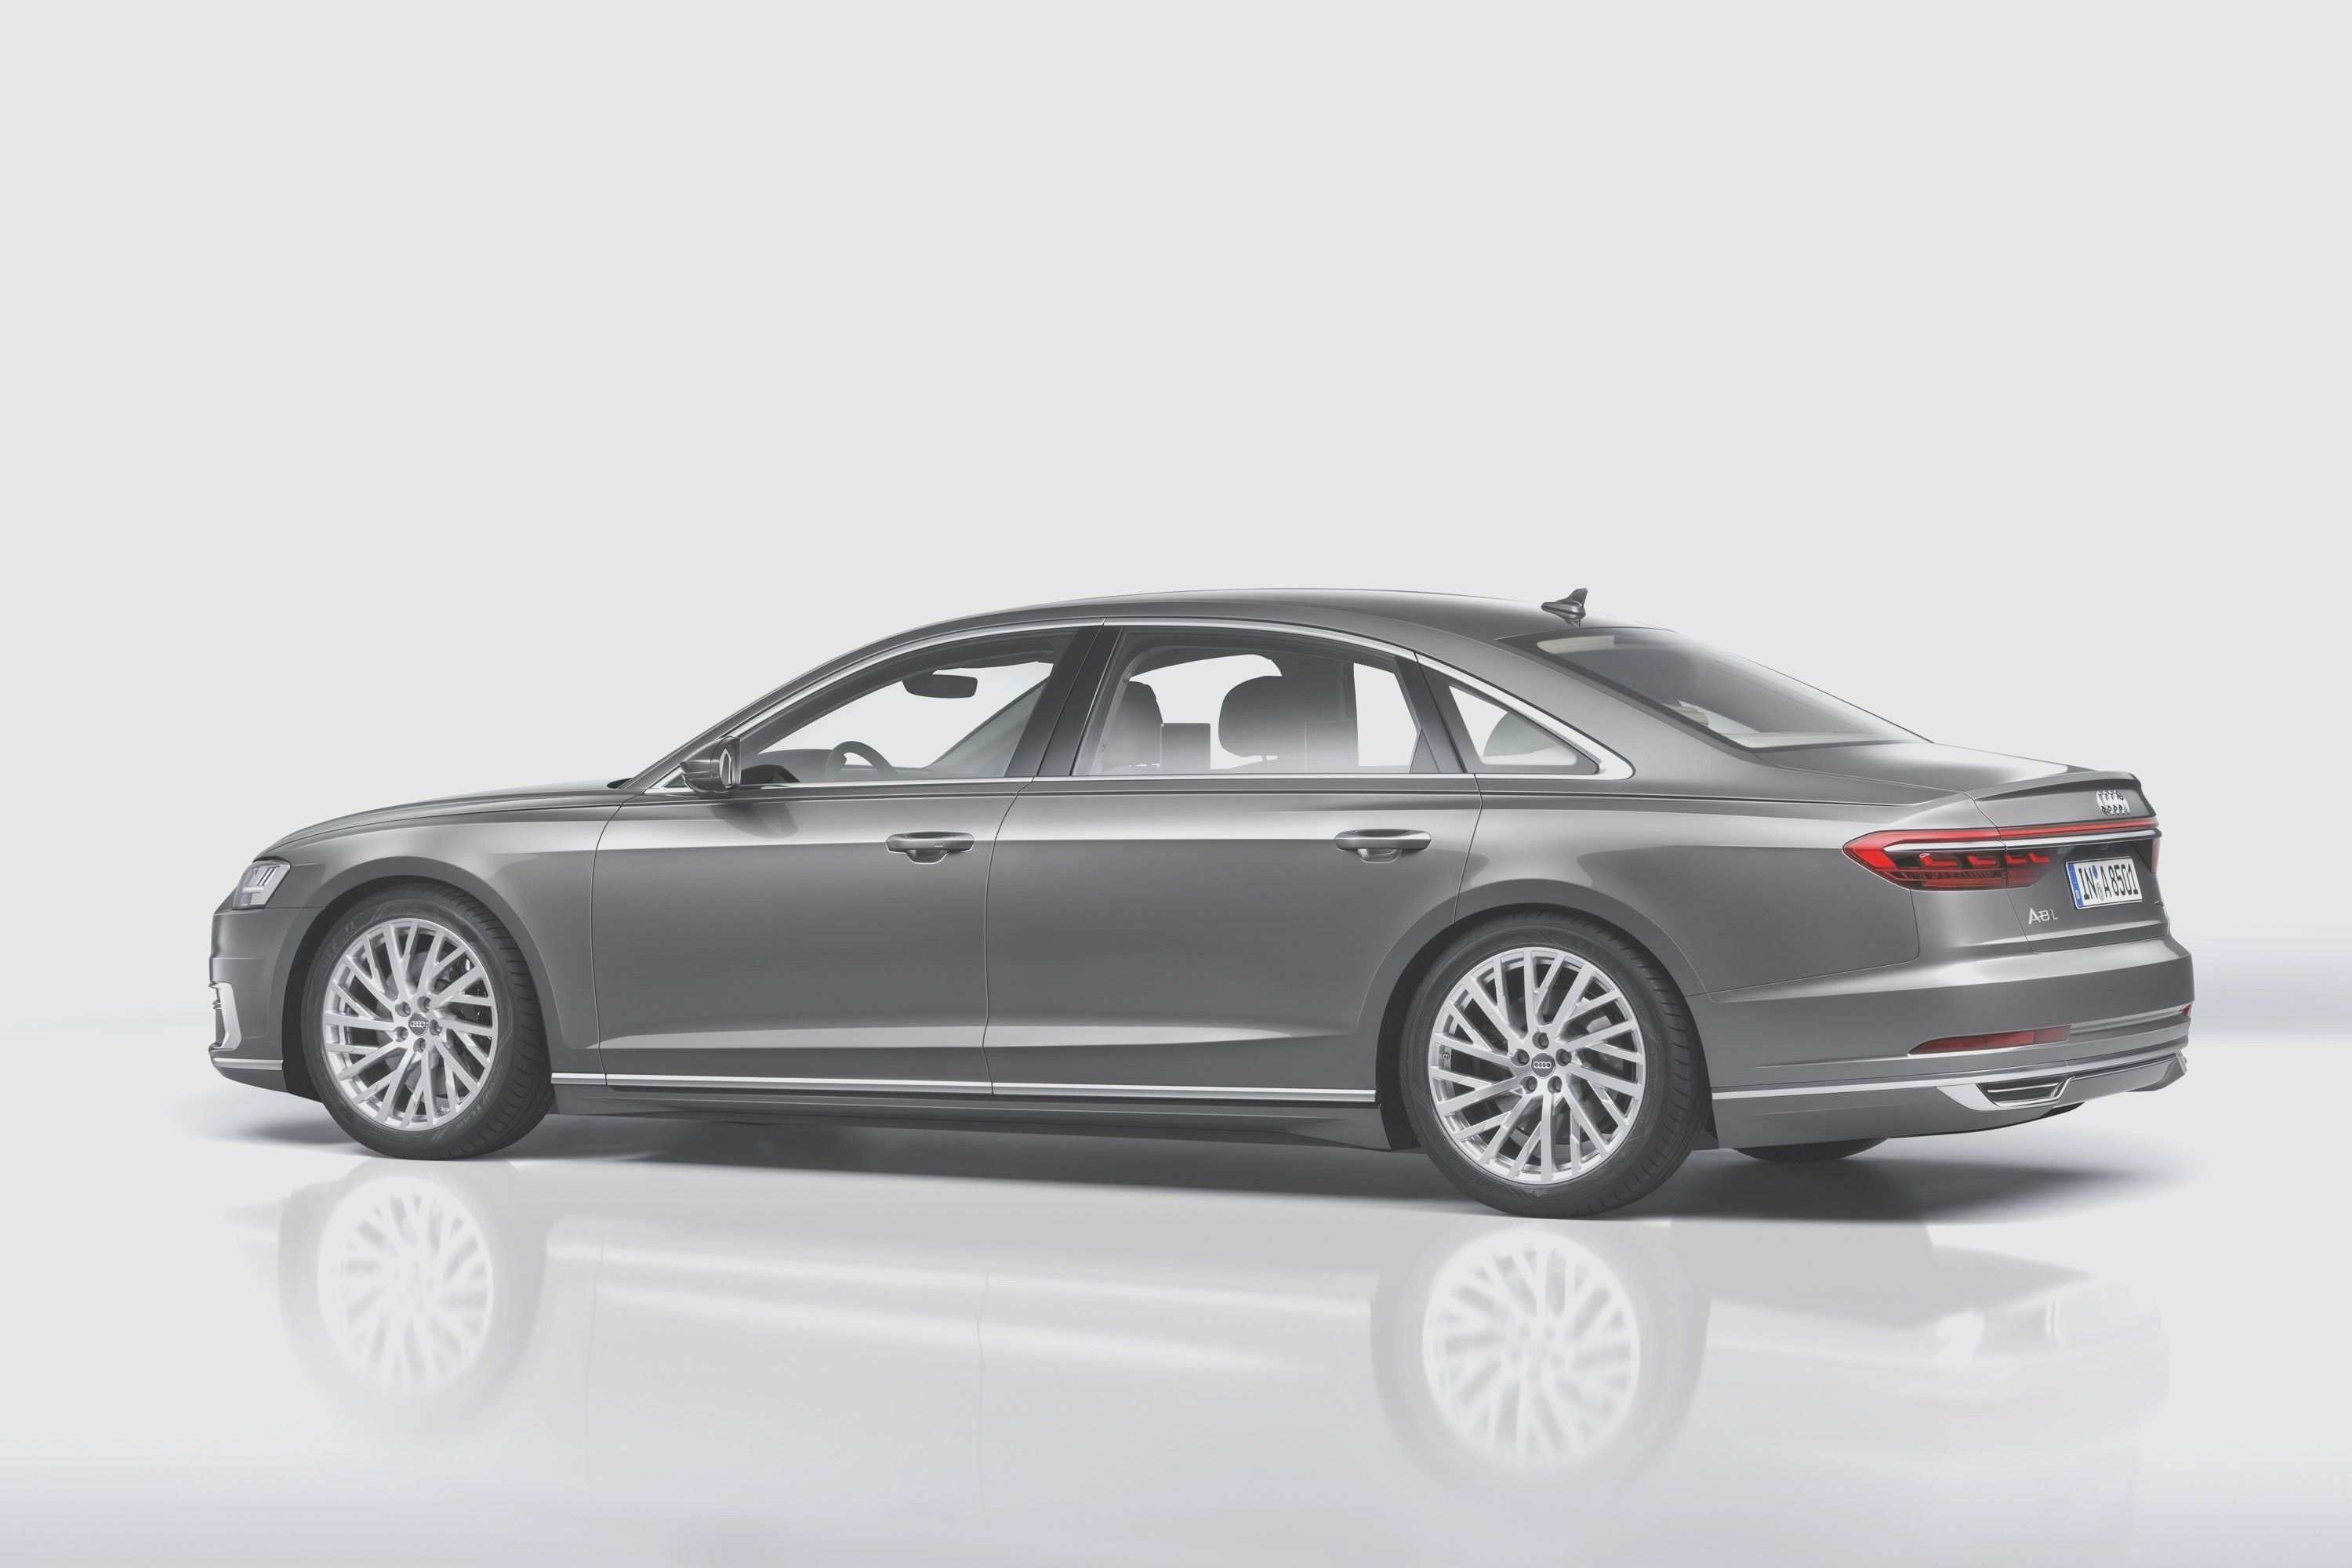 85 The 2020 Audi A8 L In Usa Pricing for 2020 Audi A8 L In Usa